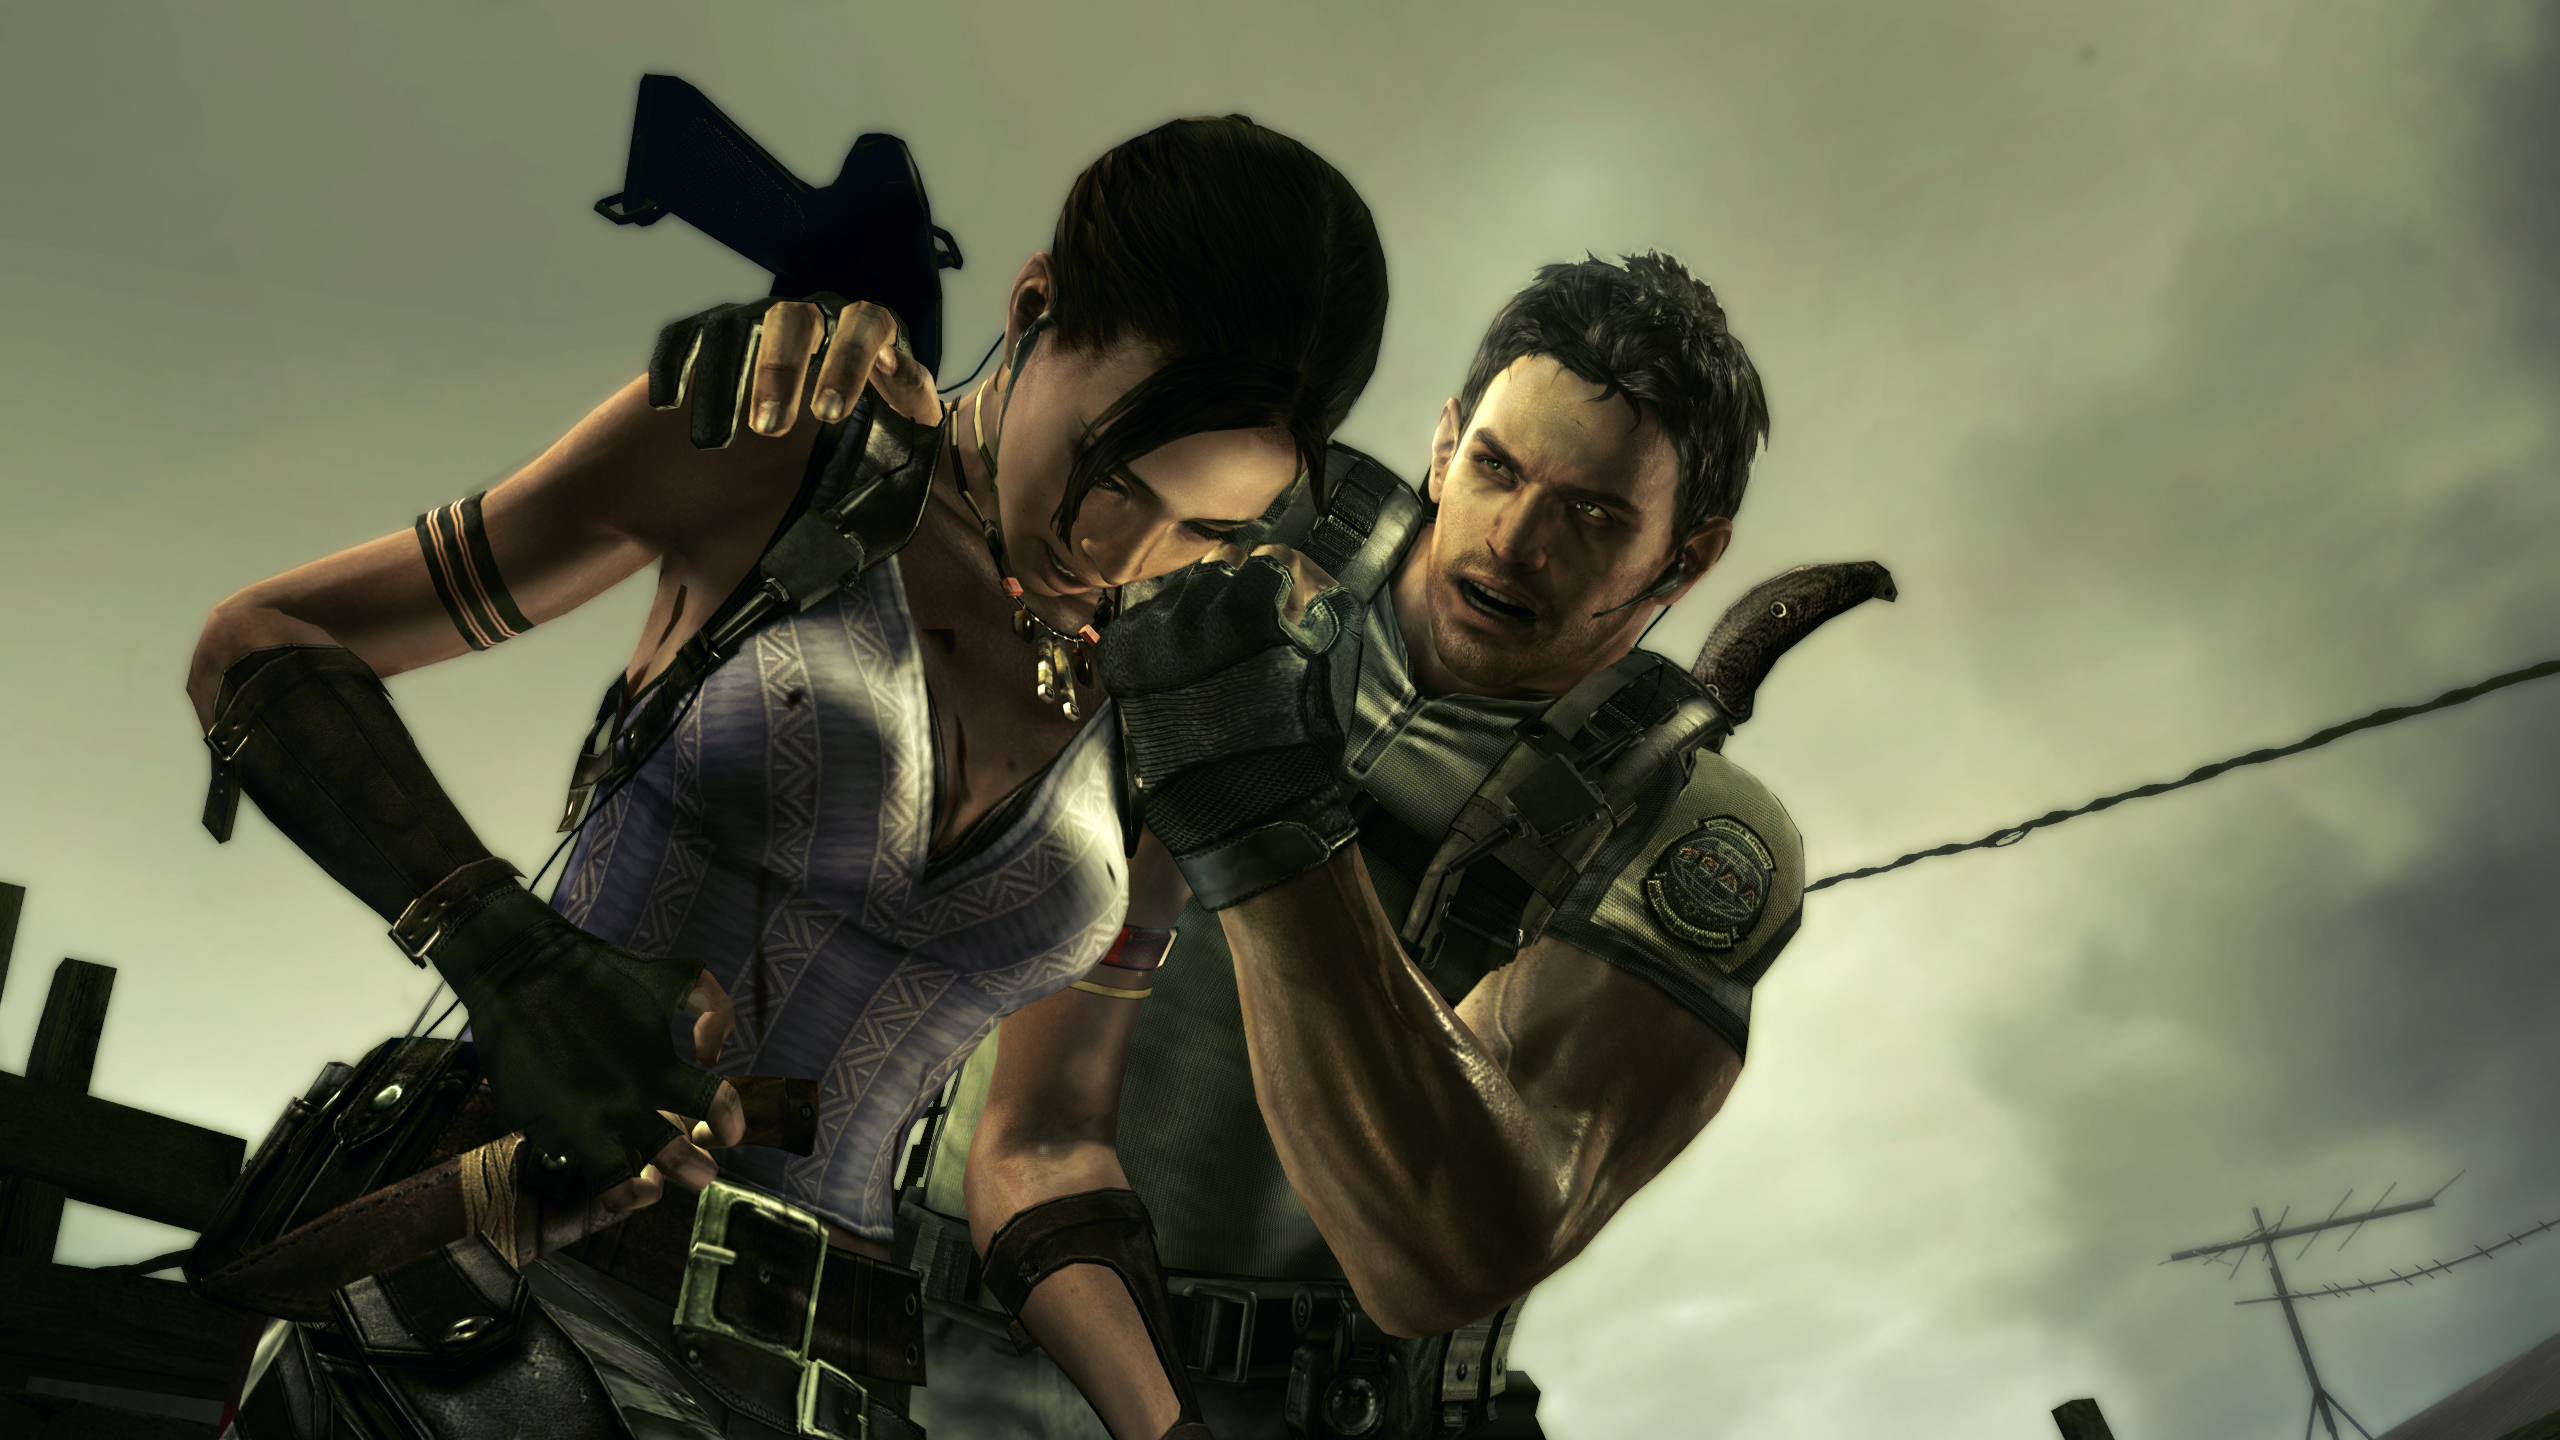 File:Resident-evil-5-screenshot-co-op-heal-assist-500x281.jpg